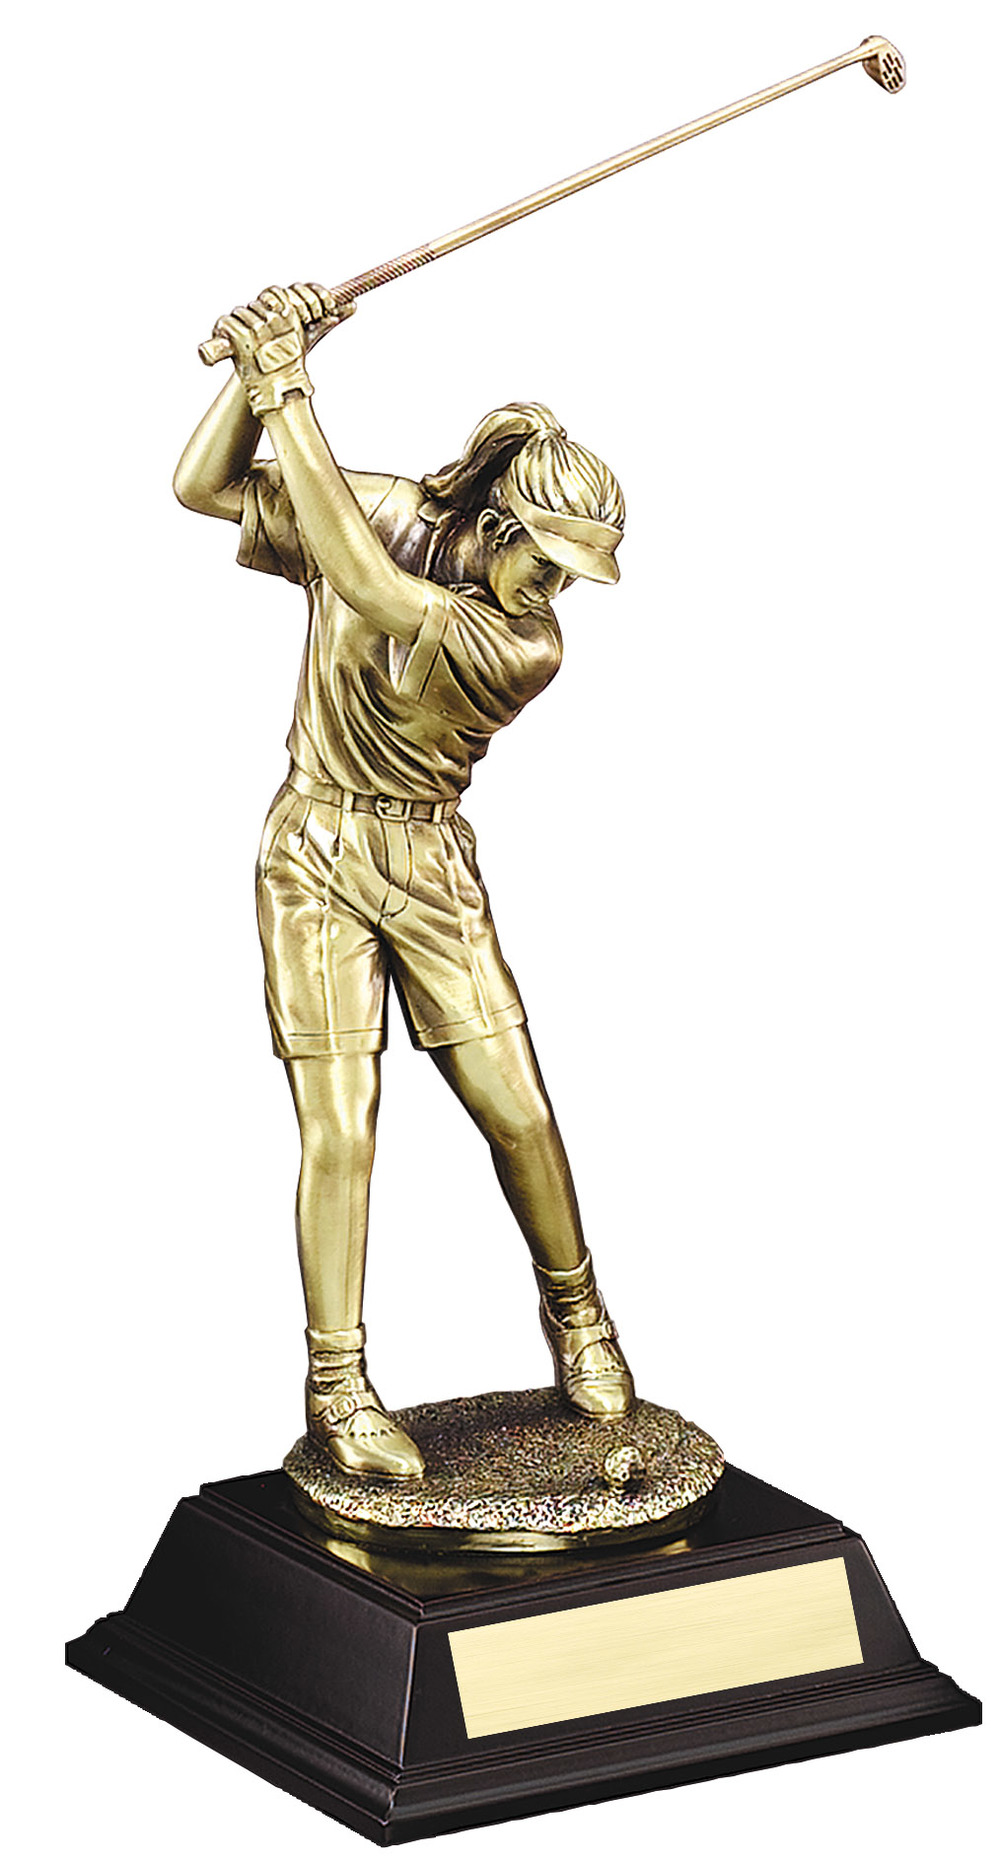 "Gold Metallic Resin - Driver, Female: X-Large: G2694 - 19"" tall - $81 Large: G2693 - 15.5"" tall - $68 Medium: G2692 - 12.5"" tall - $50 Small: G2691 - 10"" tall - $38"